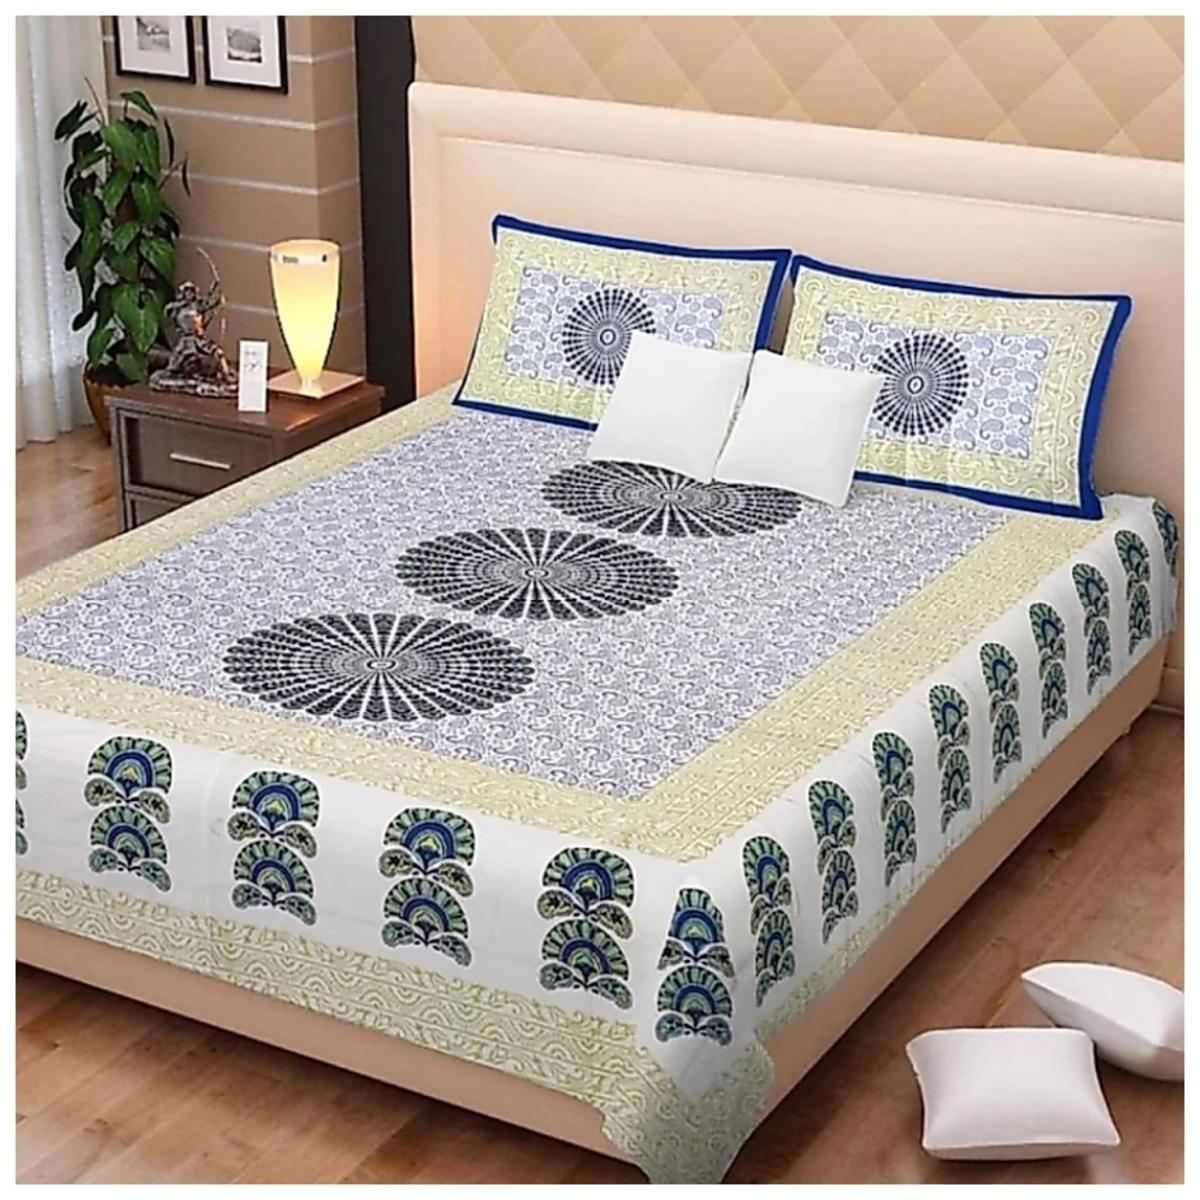 Pooja Fashion - Blue Colored Printed Double Cotton Bedsheet With 2 Pillow Cover